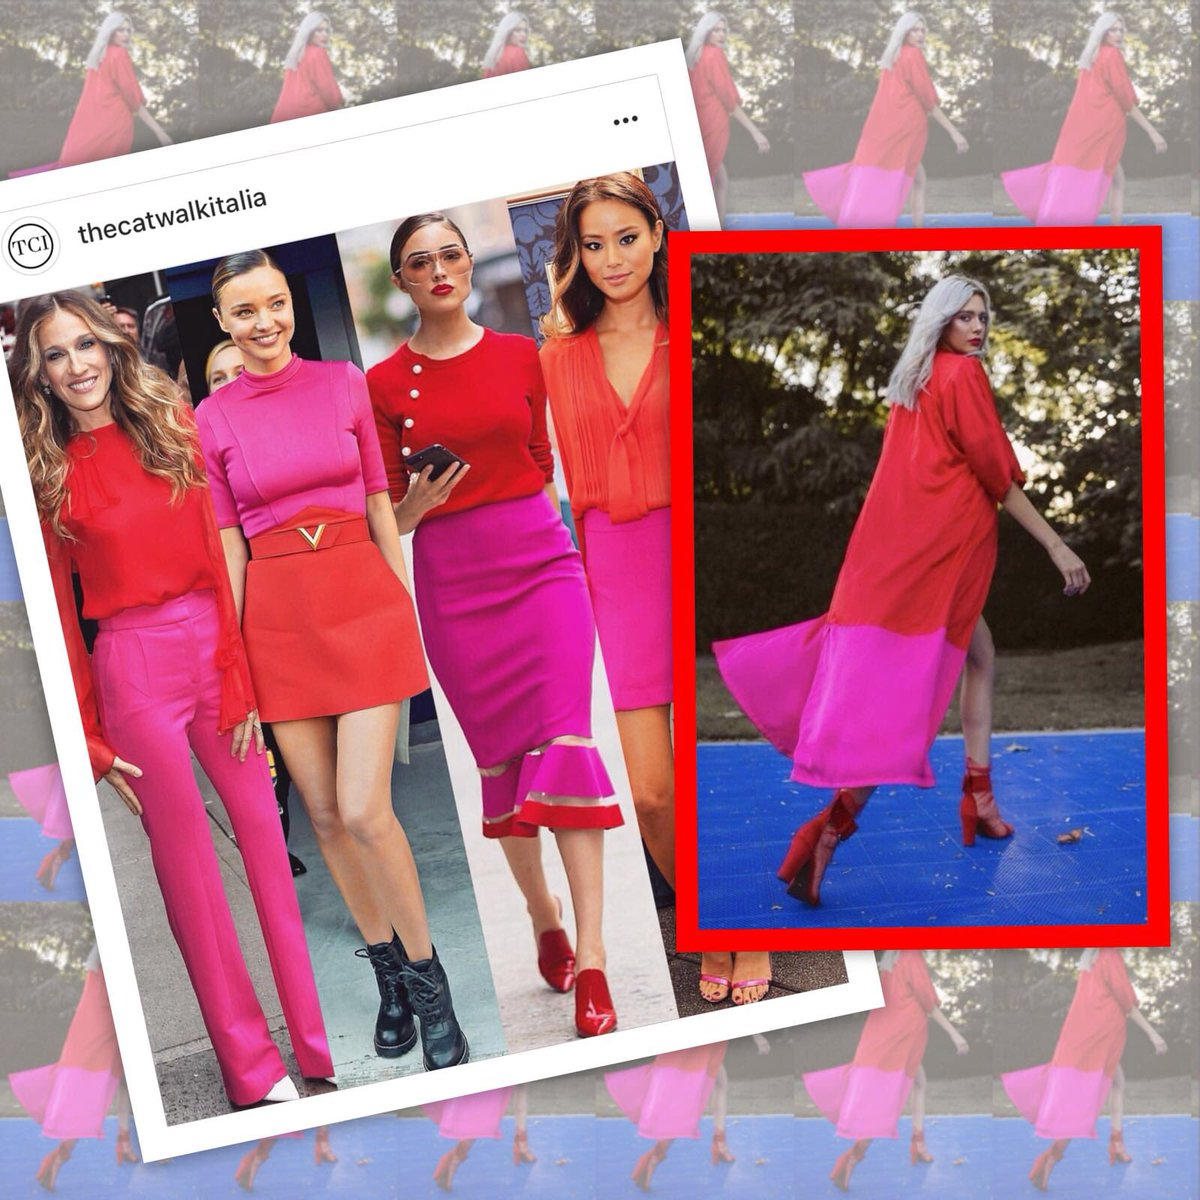 NOW TRENDINGRednPink 'Duster' coat for them early spring days • Shop on http://www.jiajiaboutique.com • . . #fashion #fashionista #colors #red #pink #love #dustercoat #springsummer #trending #brightcolors #styleinspo #stylecrush #outfitgoals #onlineshopping #london #dubaipic.twitter.com/1tW7QfYzOt